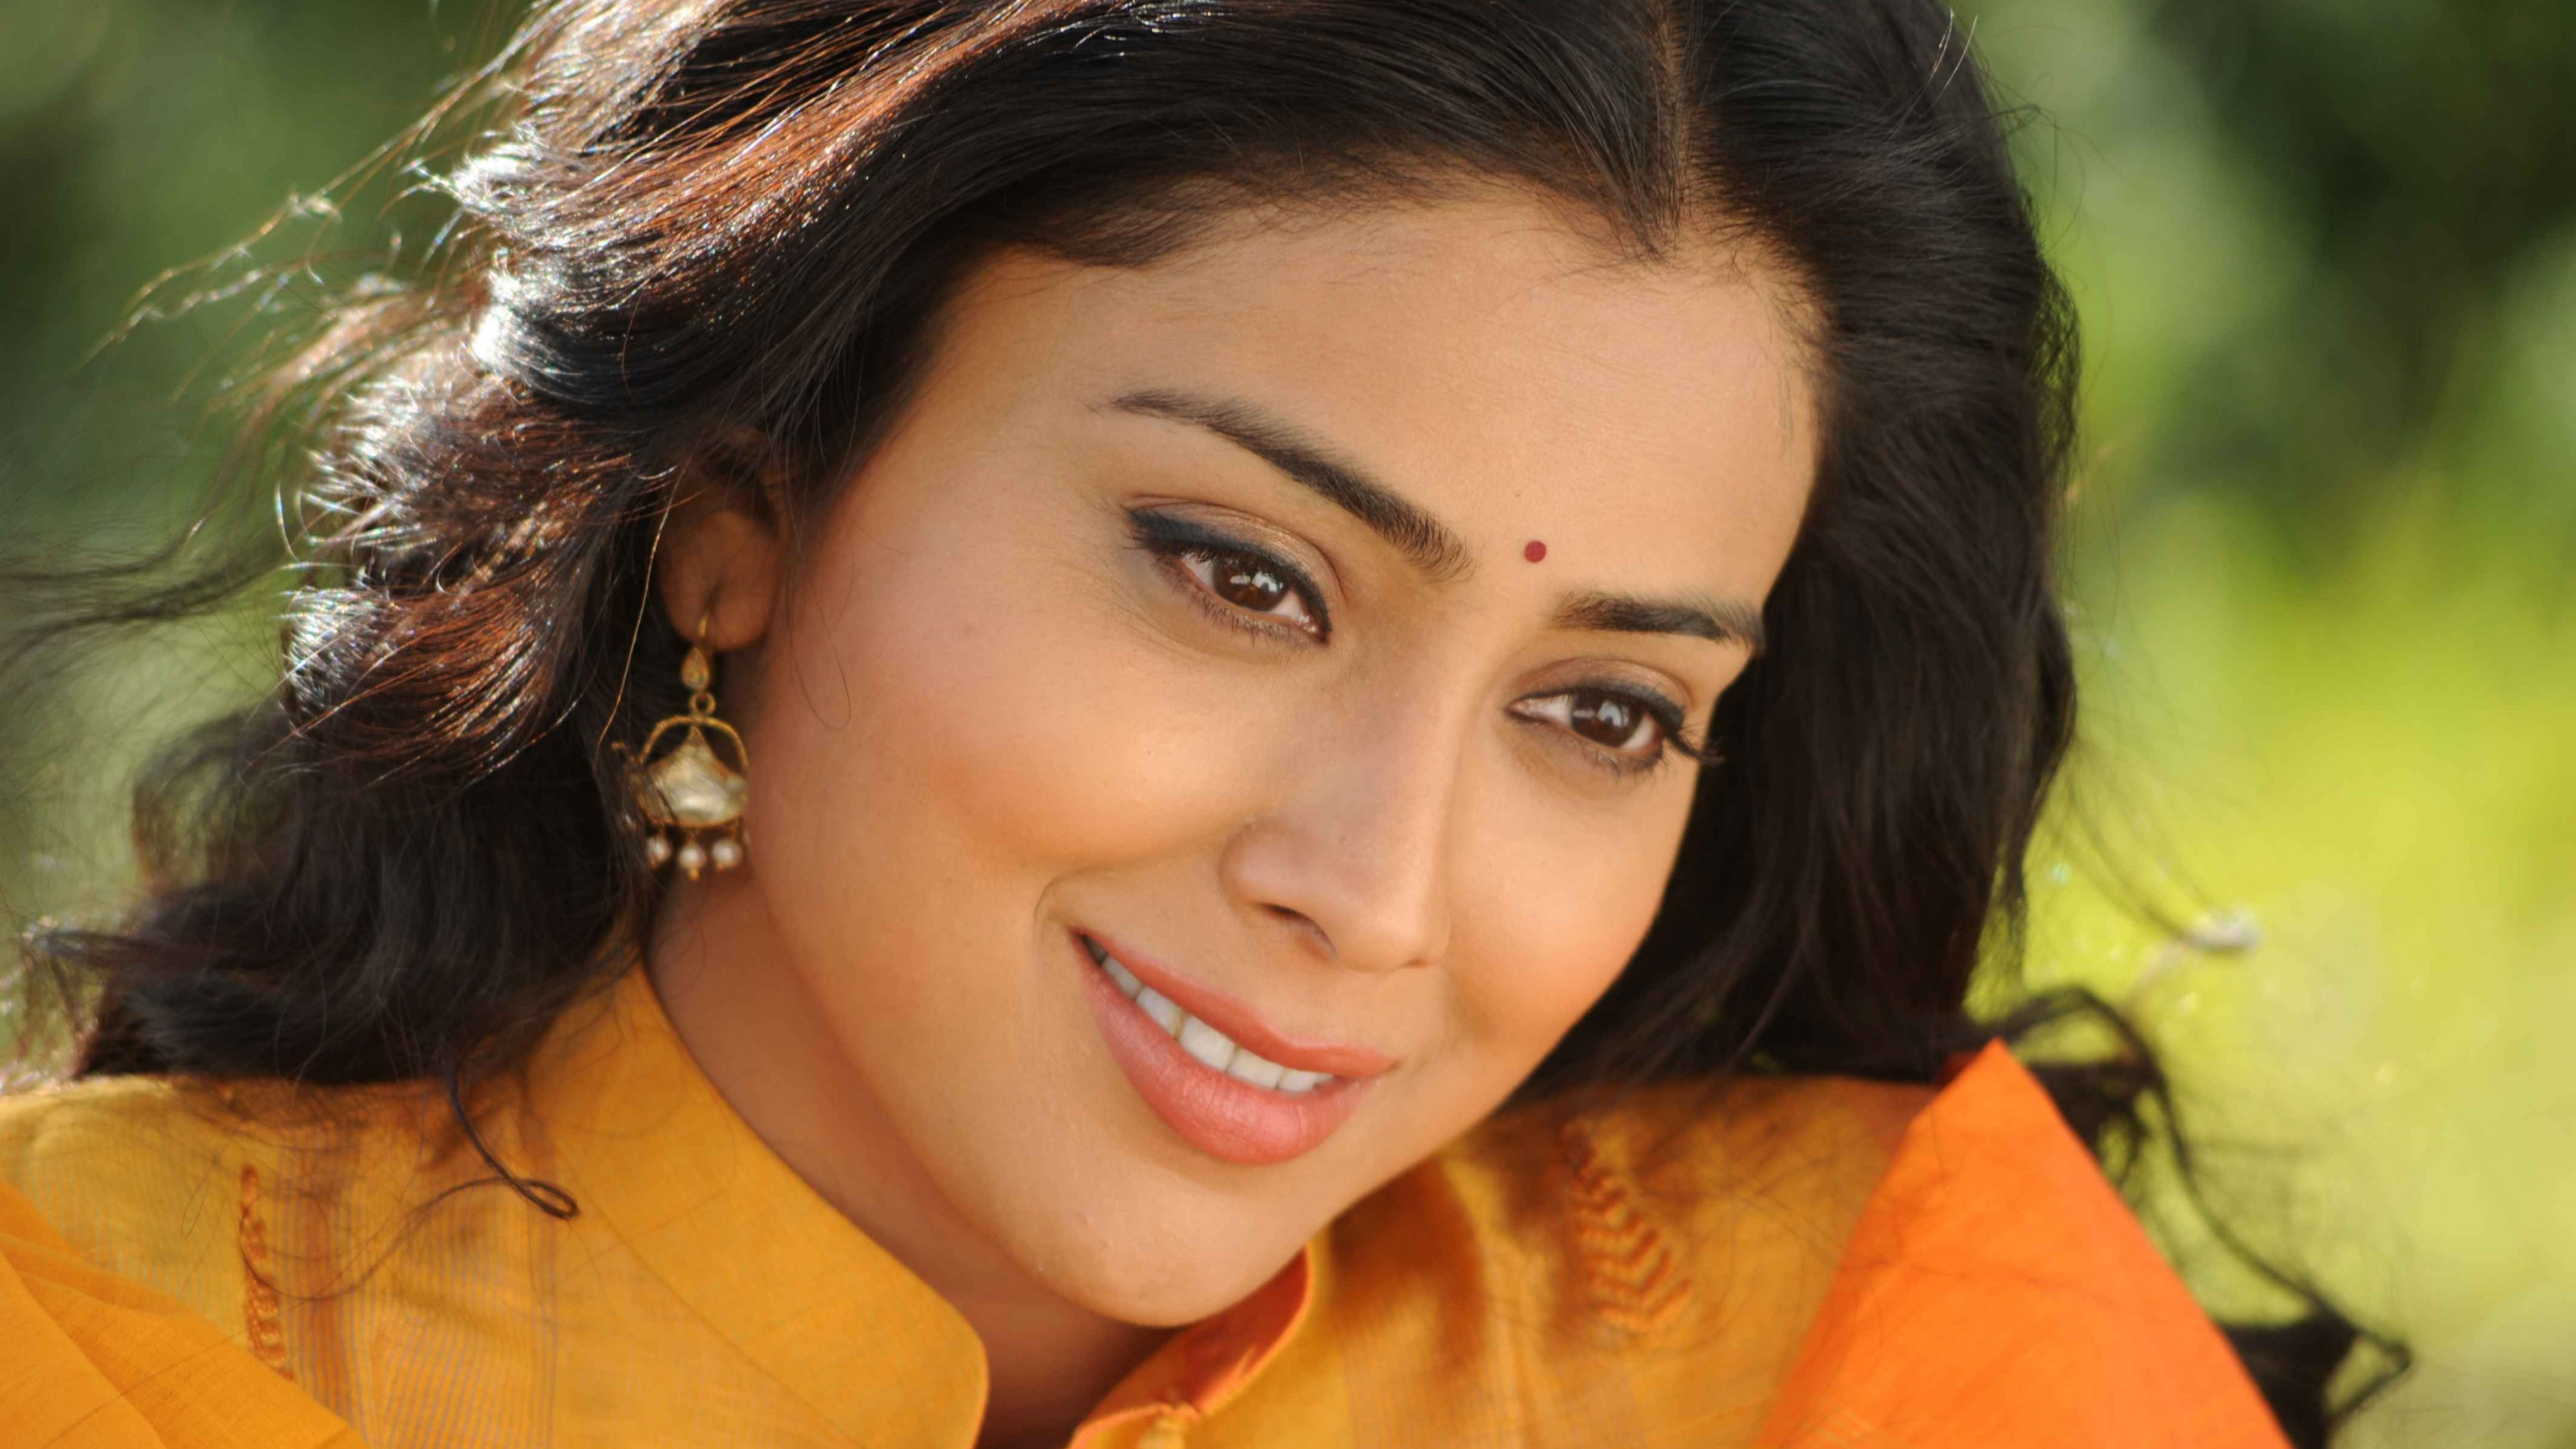 beautiful shriya saran smile face free wallpaper mobile background